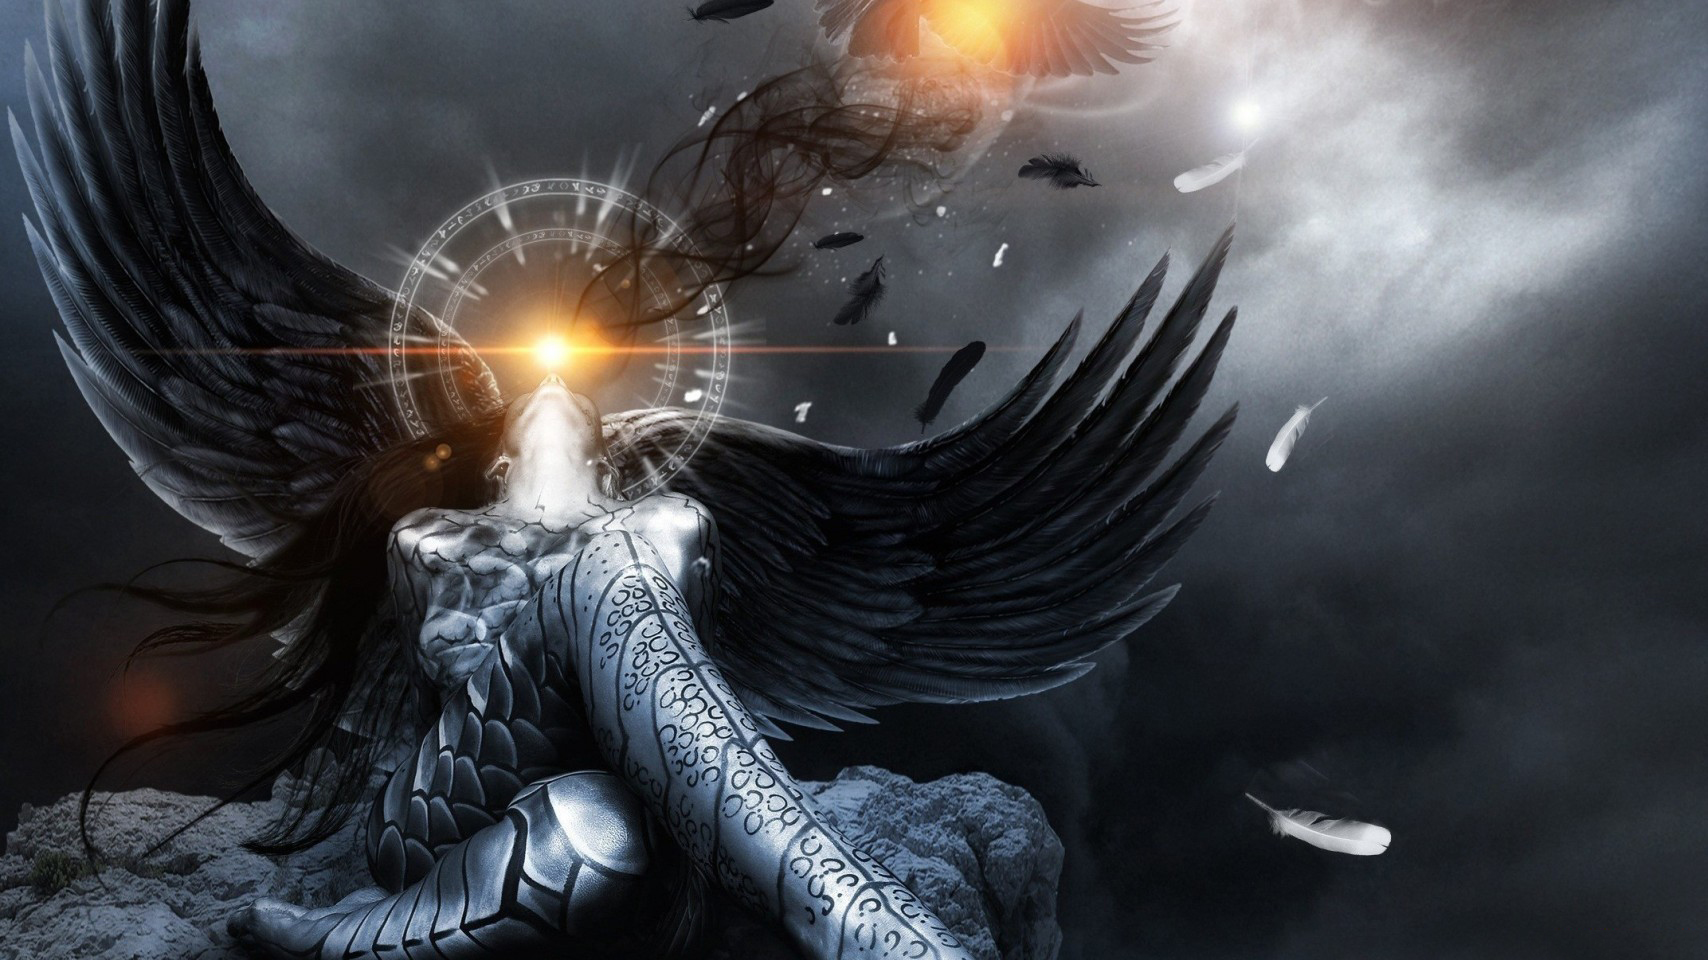 Angel wallpaper and background image 1708x960 id - Dark gothic angel wallpaper ...